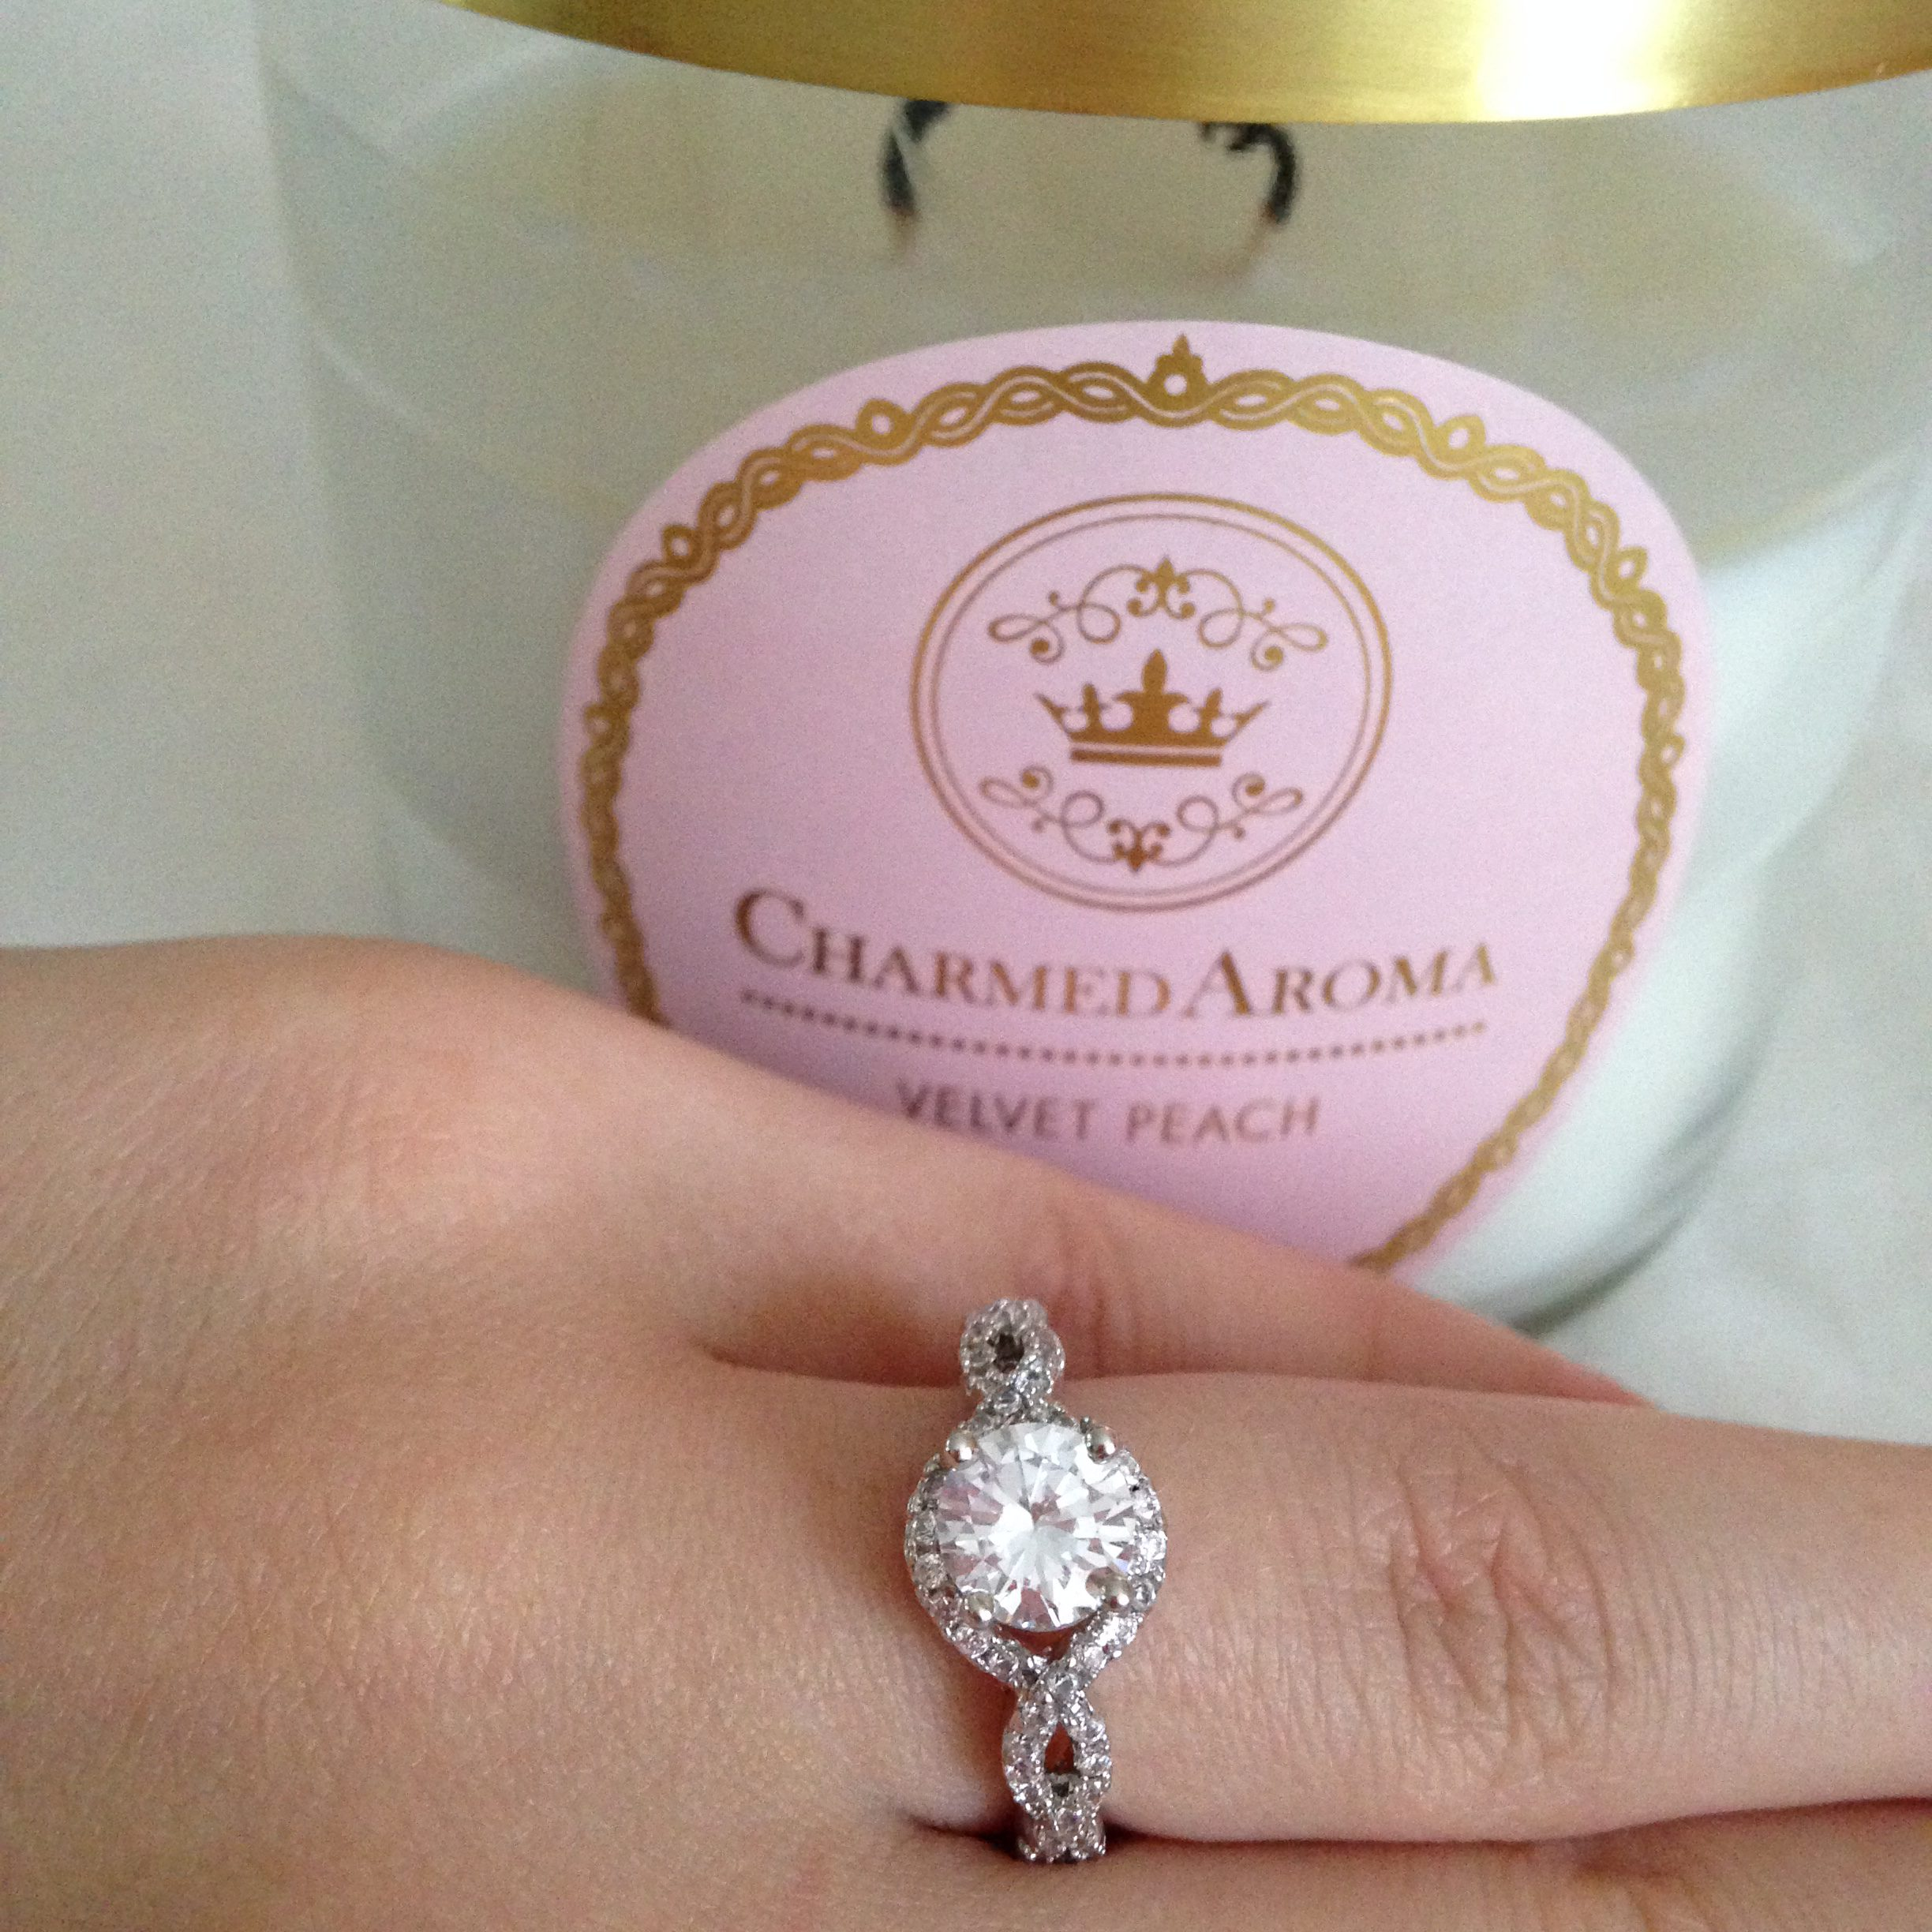 Charmed Aroma Candles Part 3